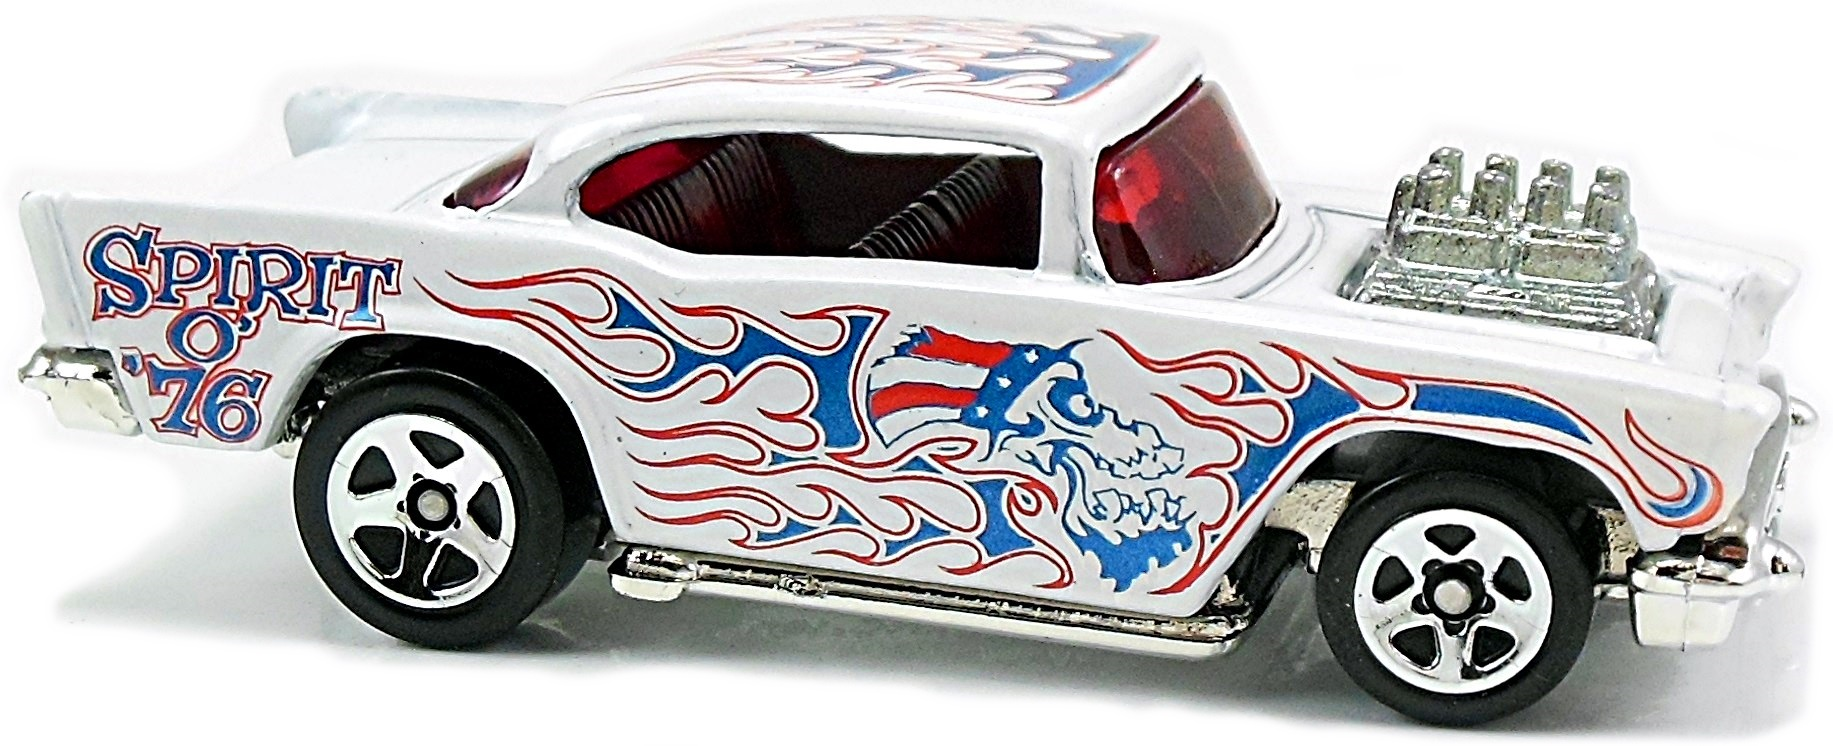 57 Chevy Exposed Engine 73mm 1984 Hot Wheels Newsletter 1976 Spirit Of 76 Truck Bf Pearl White Chrome Base Red Int And Windows Met Blue Flames On Roof Sides Sp5 Fourth July 2009 1 3